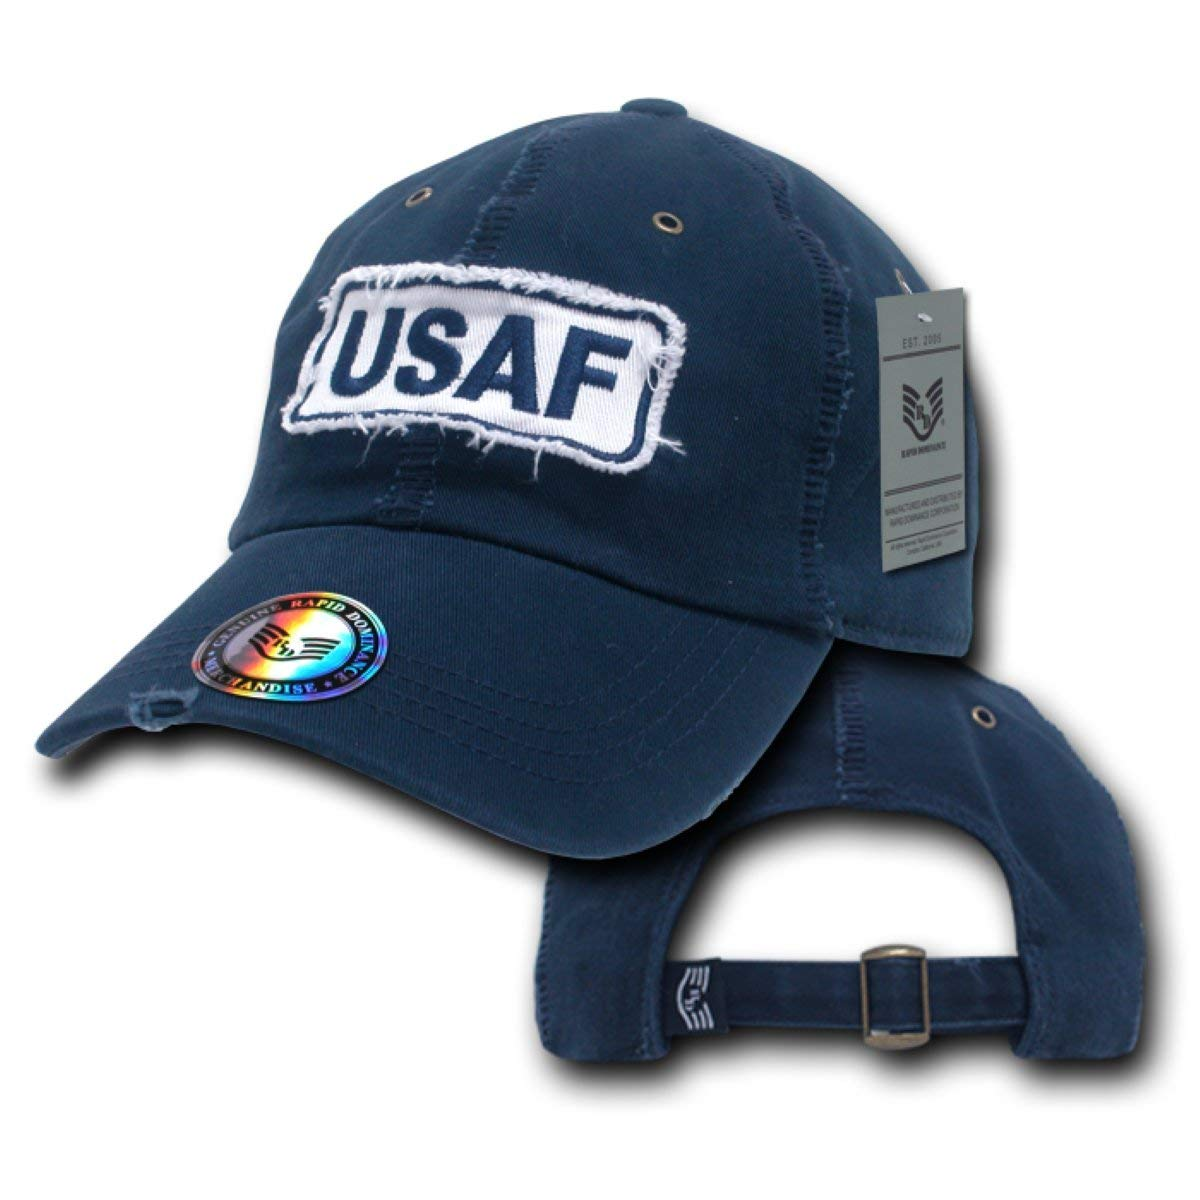 c398cfe089e Get Quotations · Rapid Dominance Military Polo Brass Buckle Giant Stitch Cap  USAF